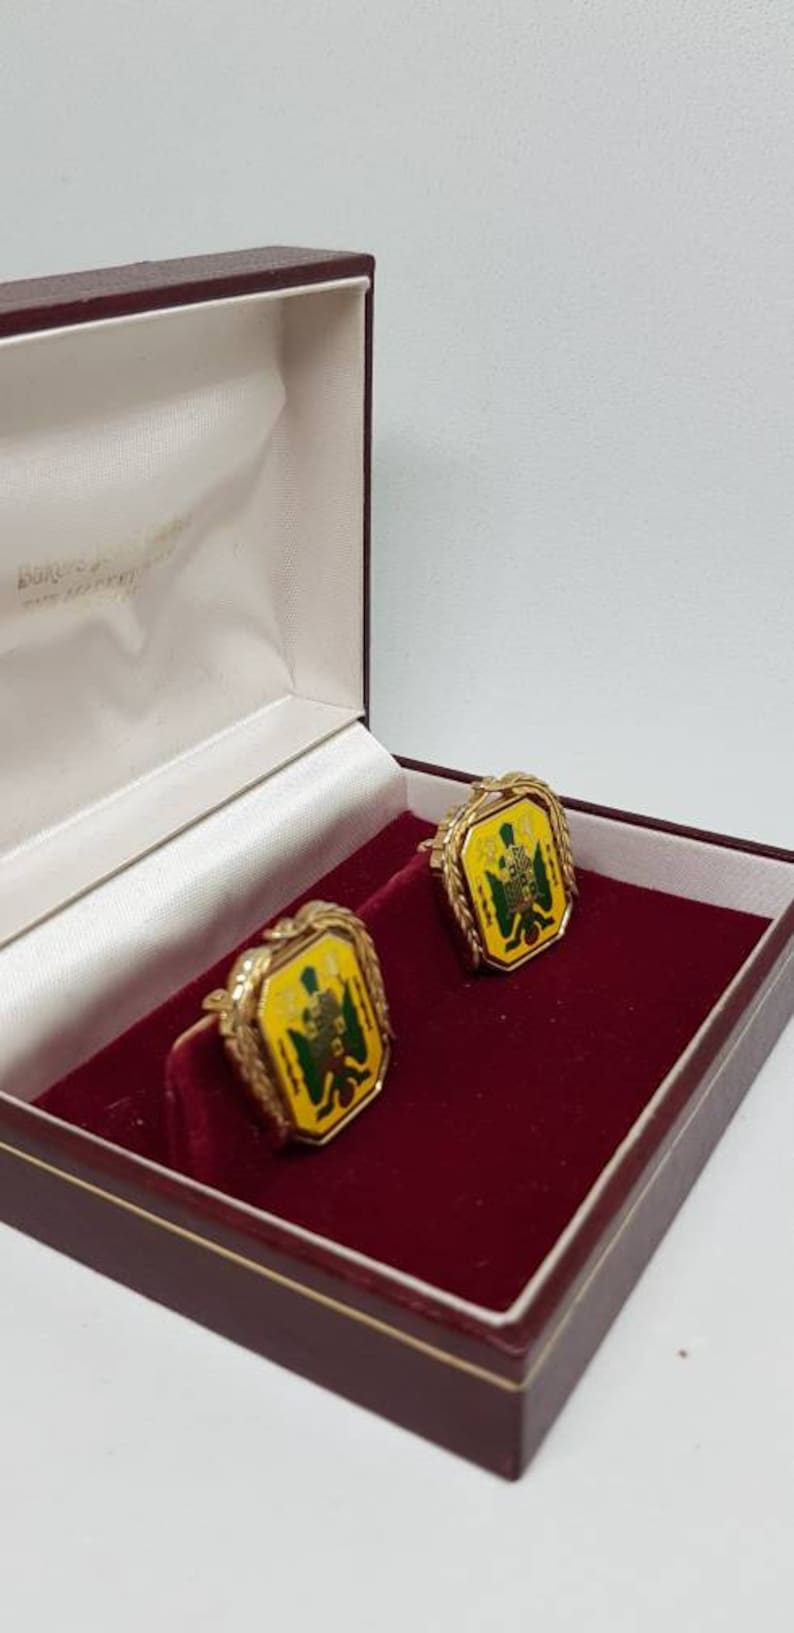 Swank cufflinks shield cuff links collectable vintage cufflinks gift for him birthday gift fathers day